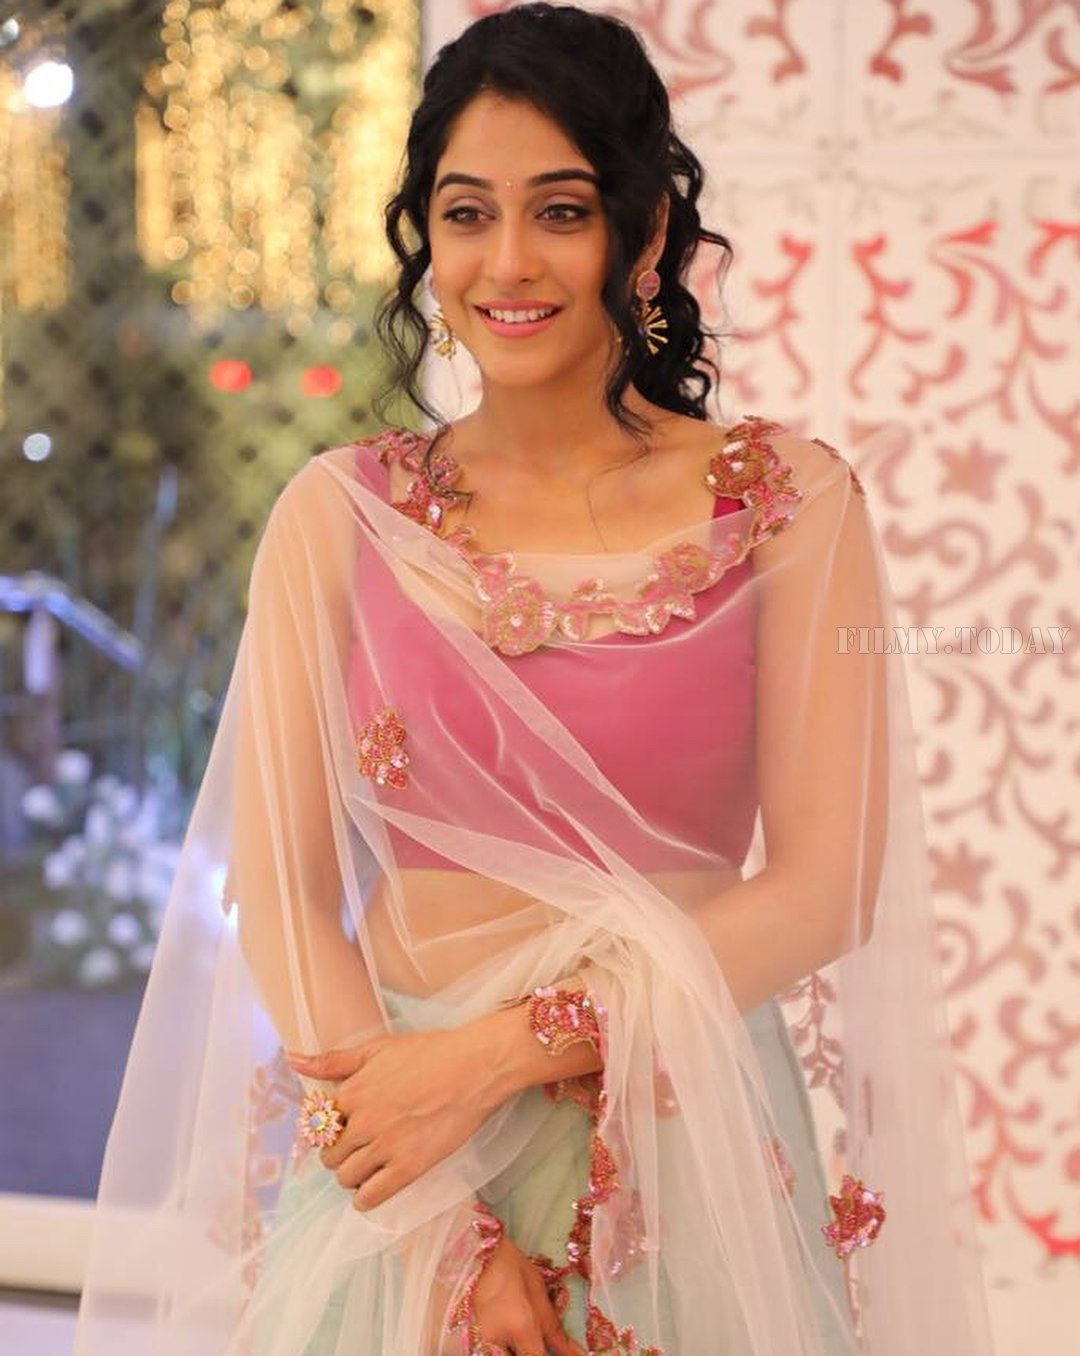 HD Photos & Wallpapers of Mr. Chandramouli HOT & Sexy actress Regina Cassandra